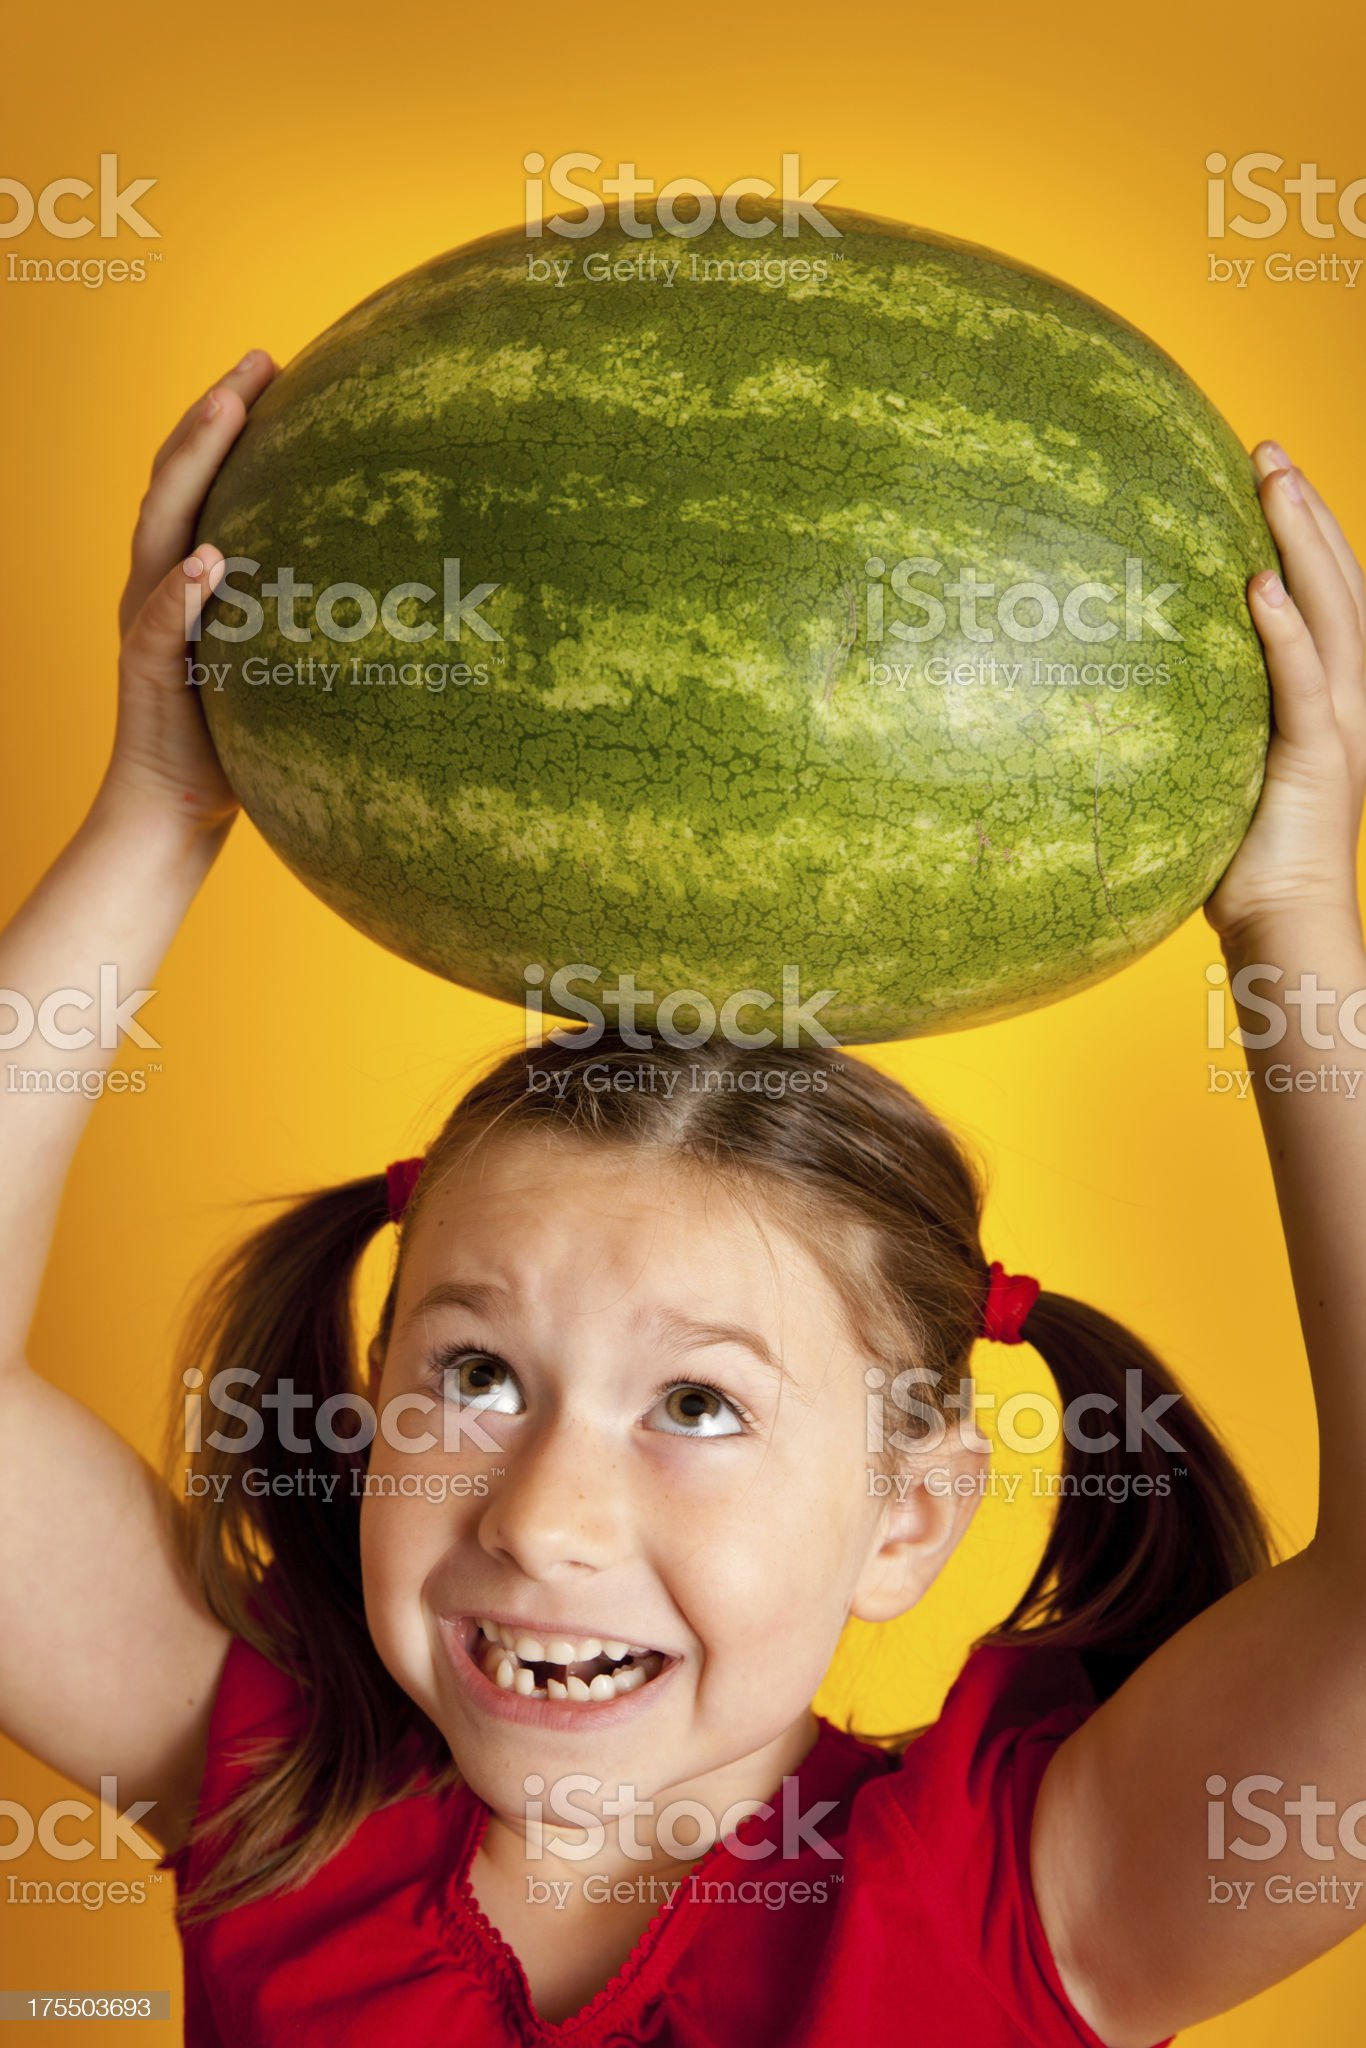 Happy Young Girl Holding Watermelon on Her Head royalty-free stock photo